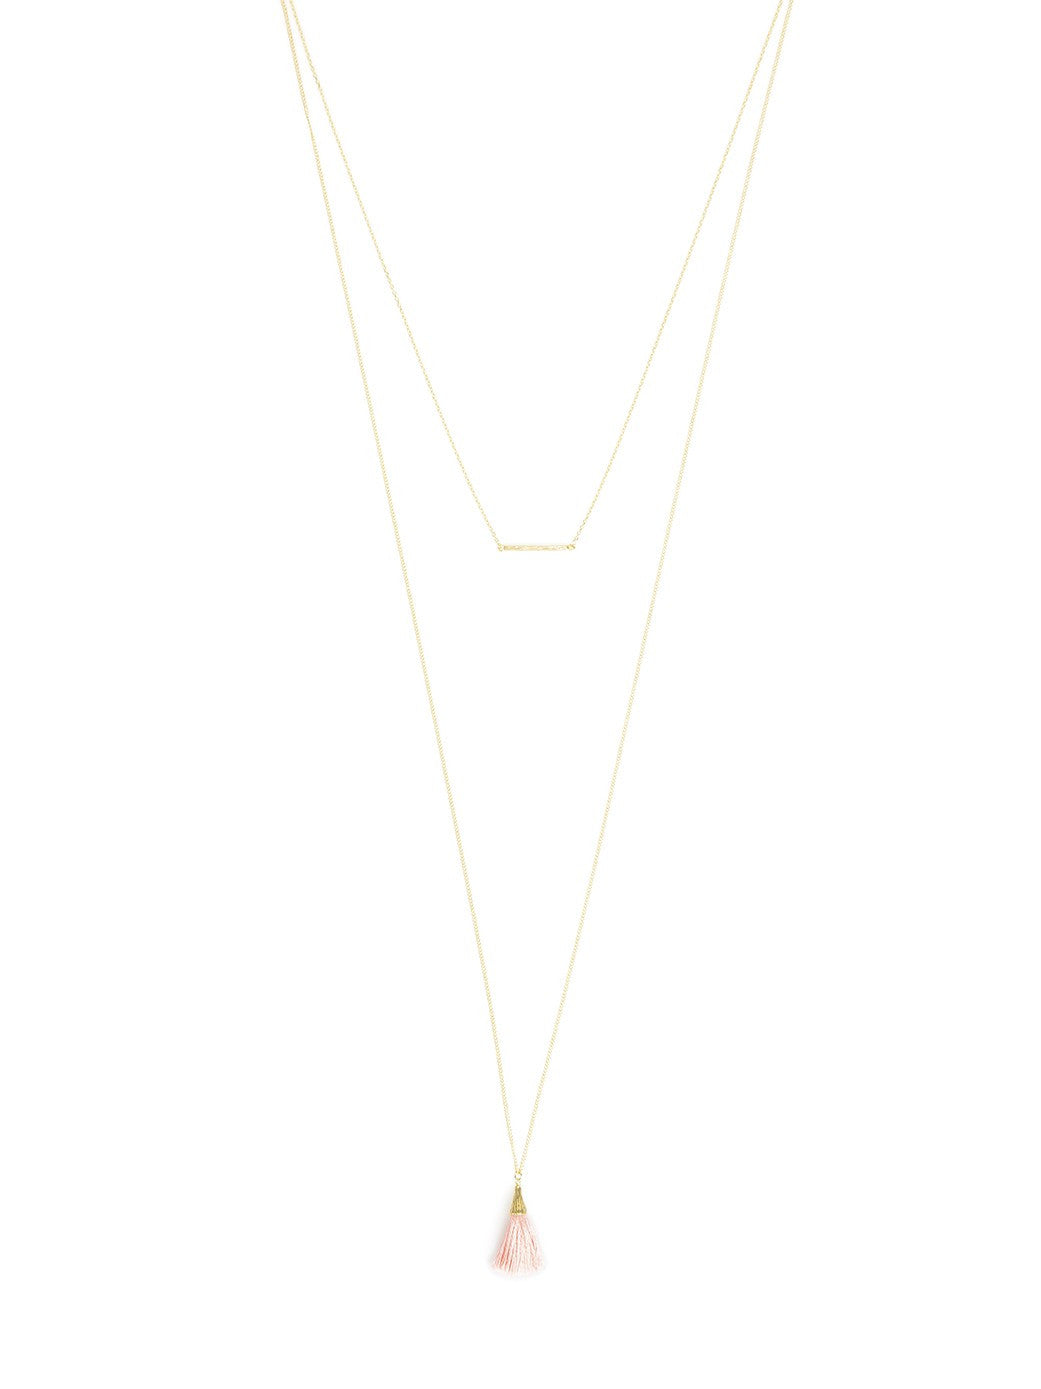 Mini Tassel and Bar Layered Necklace - Koko & Palenki - 1